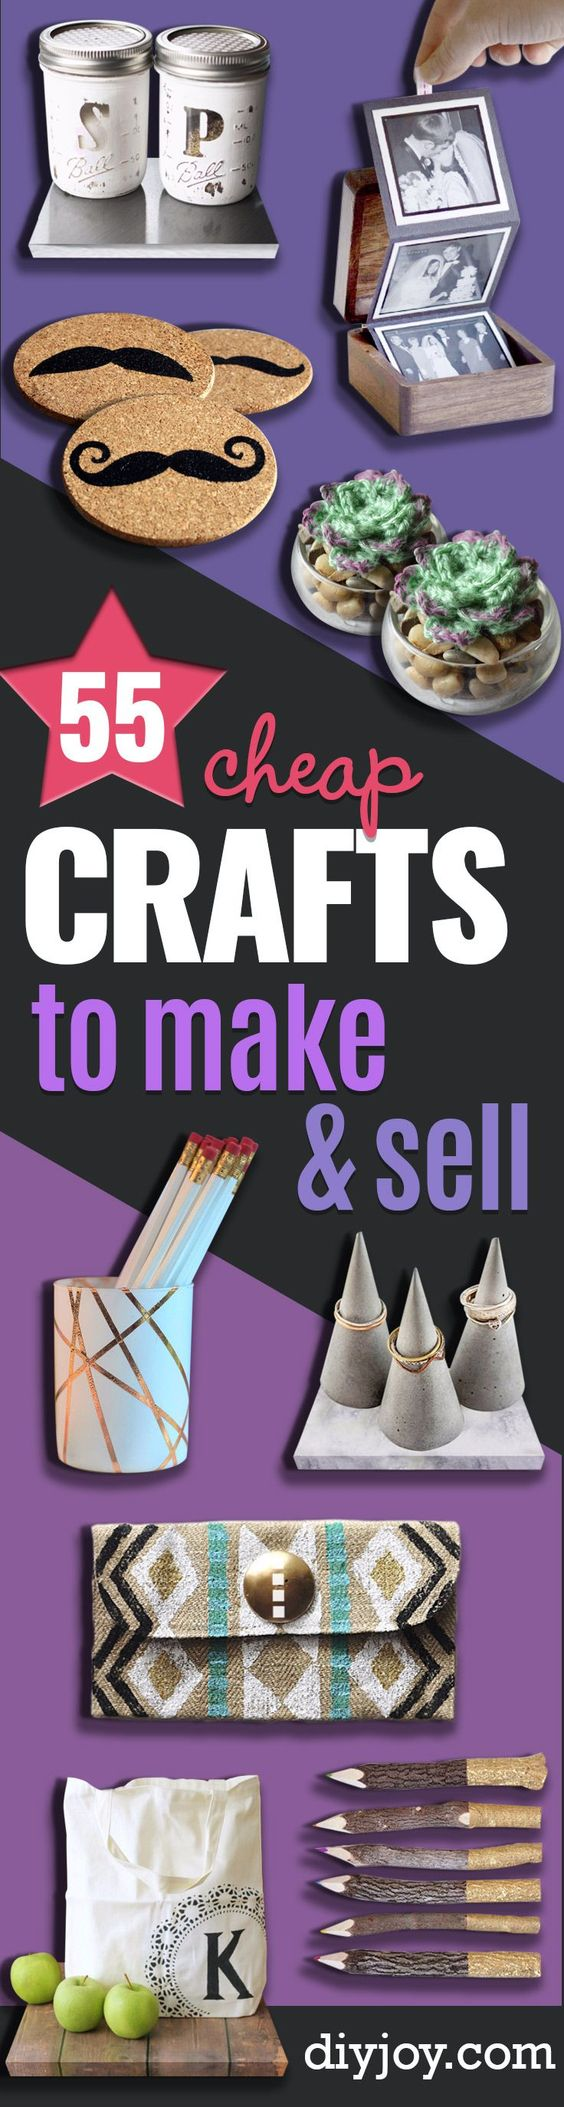 Crafts to make make and sell and diy craft projects on for Making craft items to sell